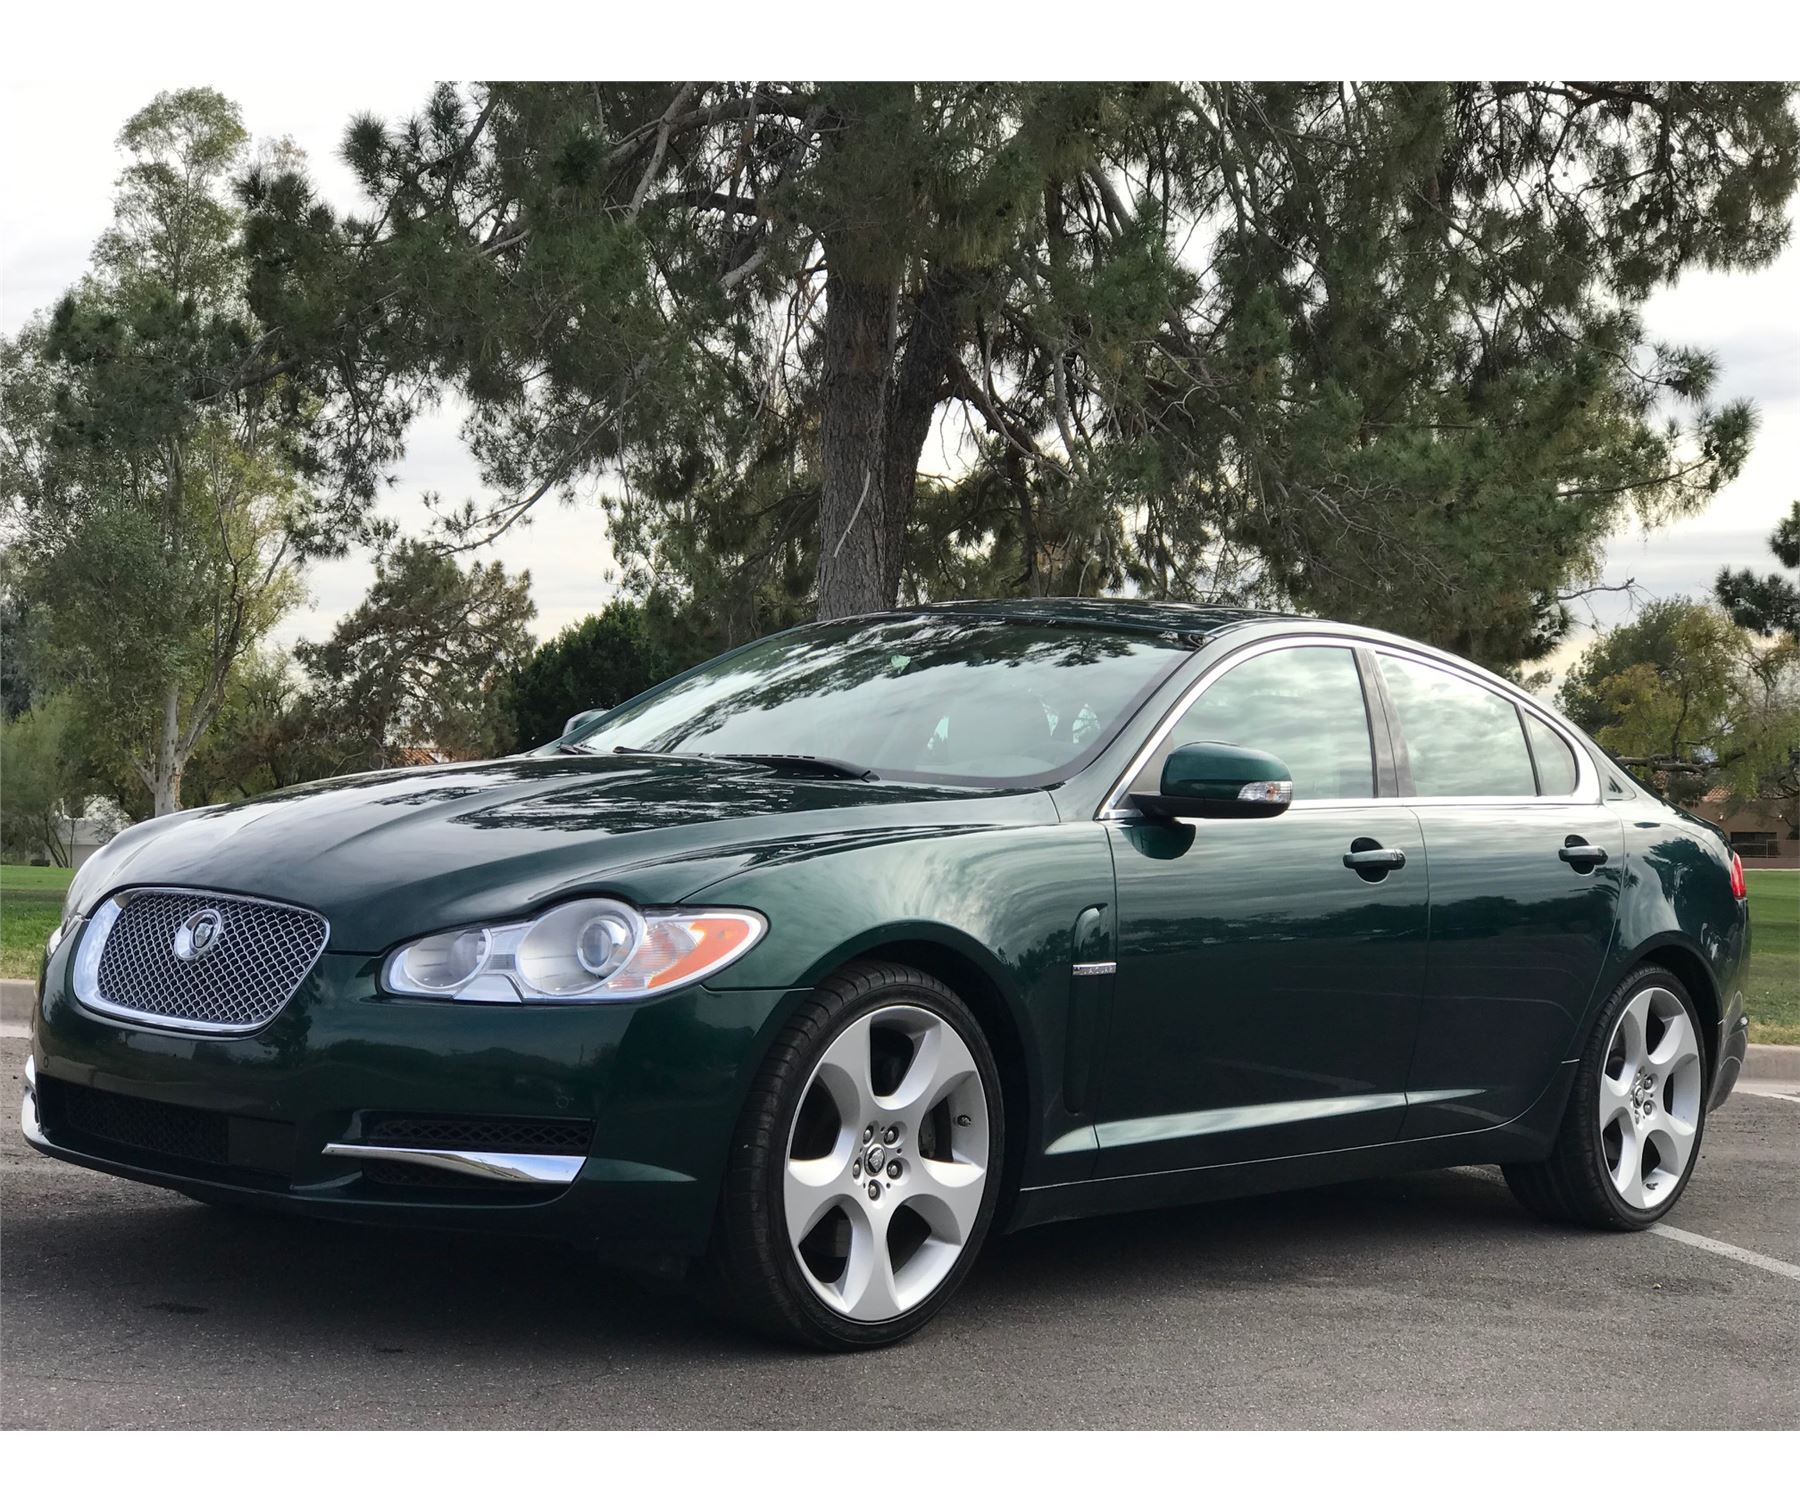 2009 JAGUAR XF SUPERCHARGED - The Electric Garage